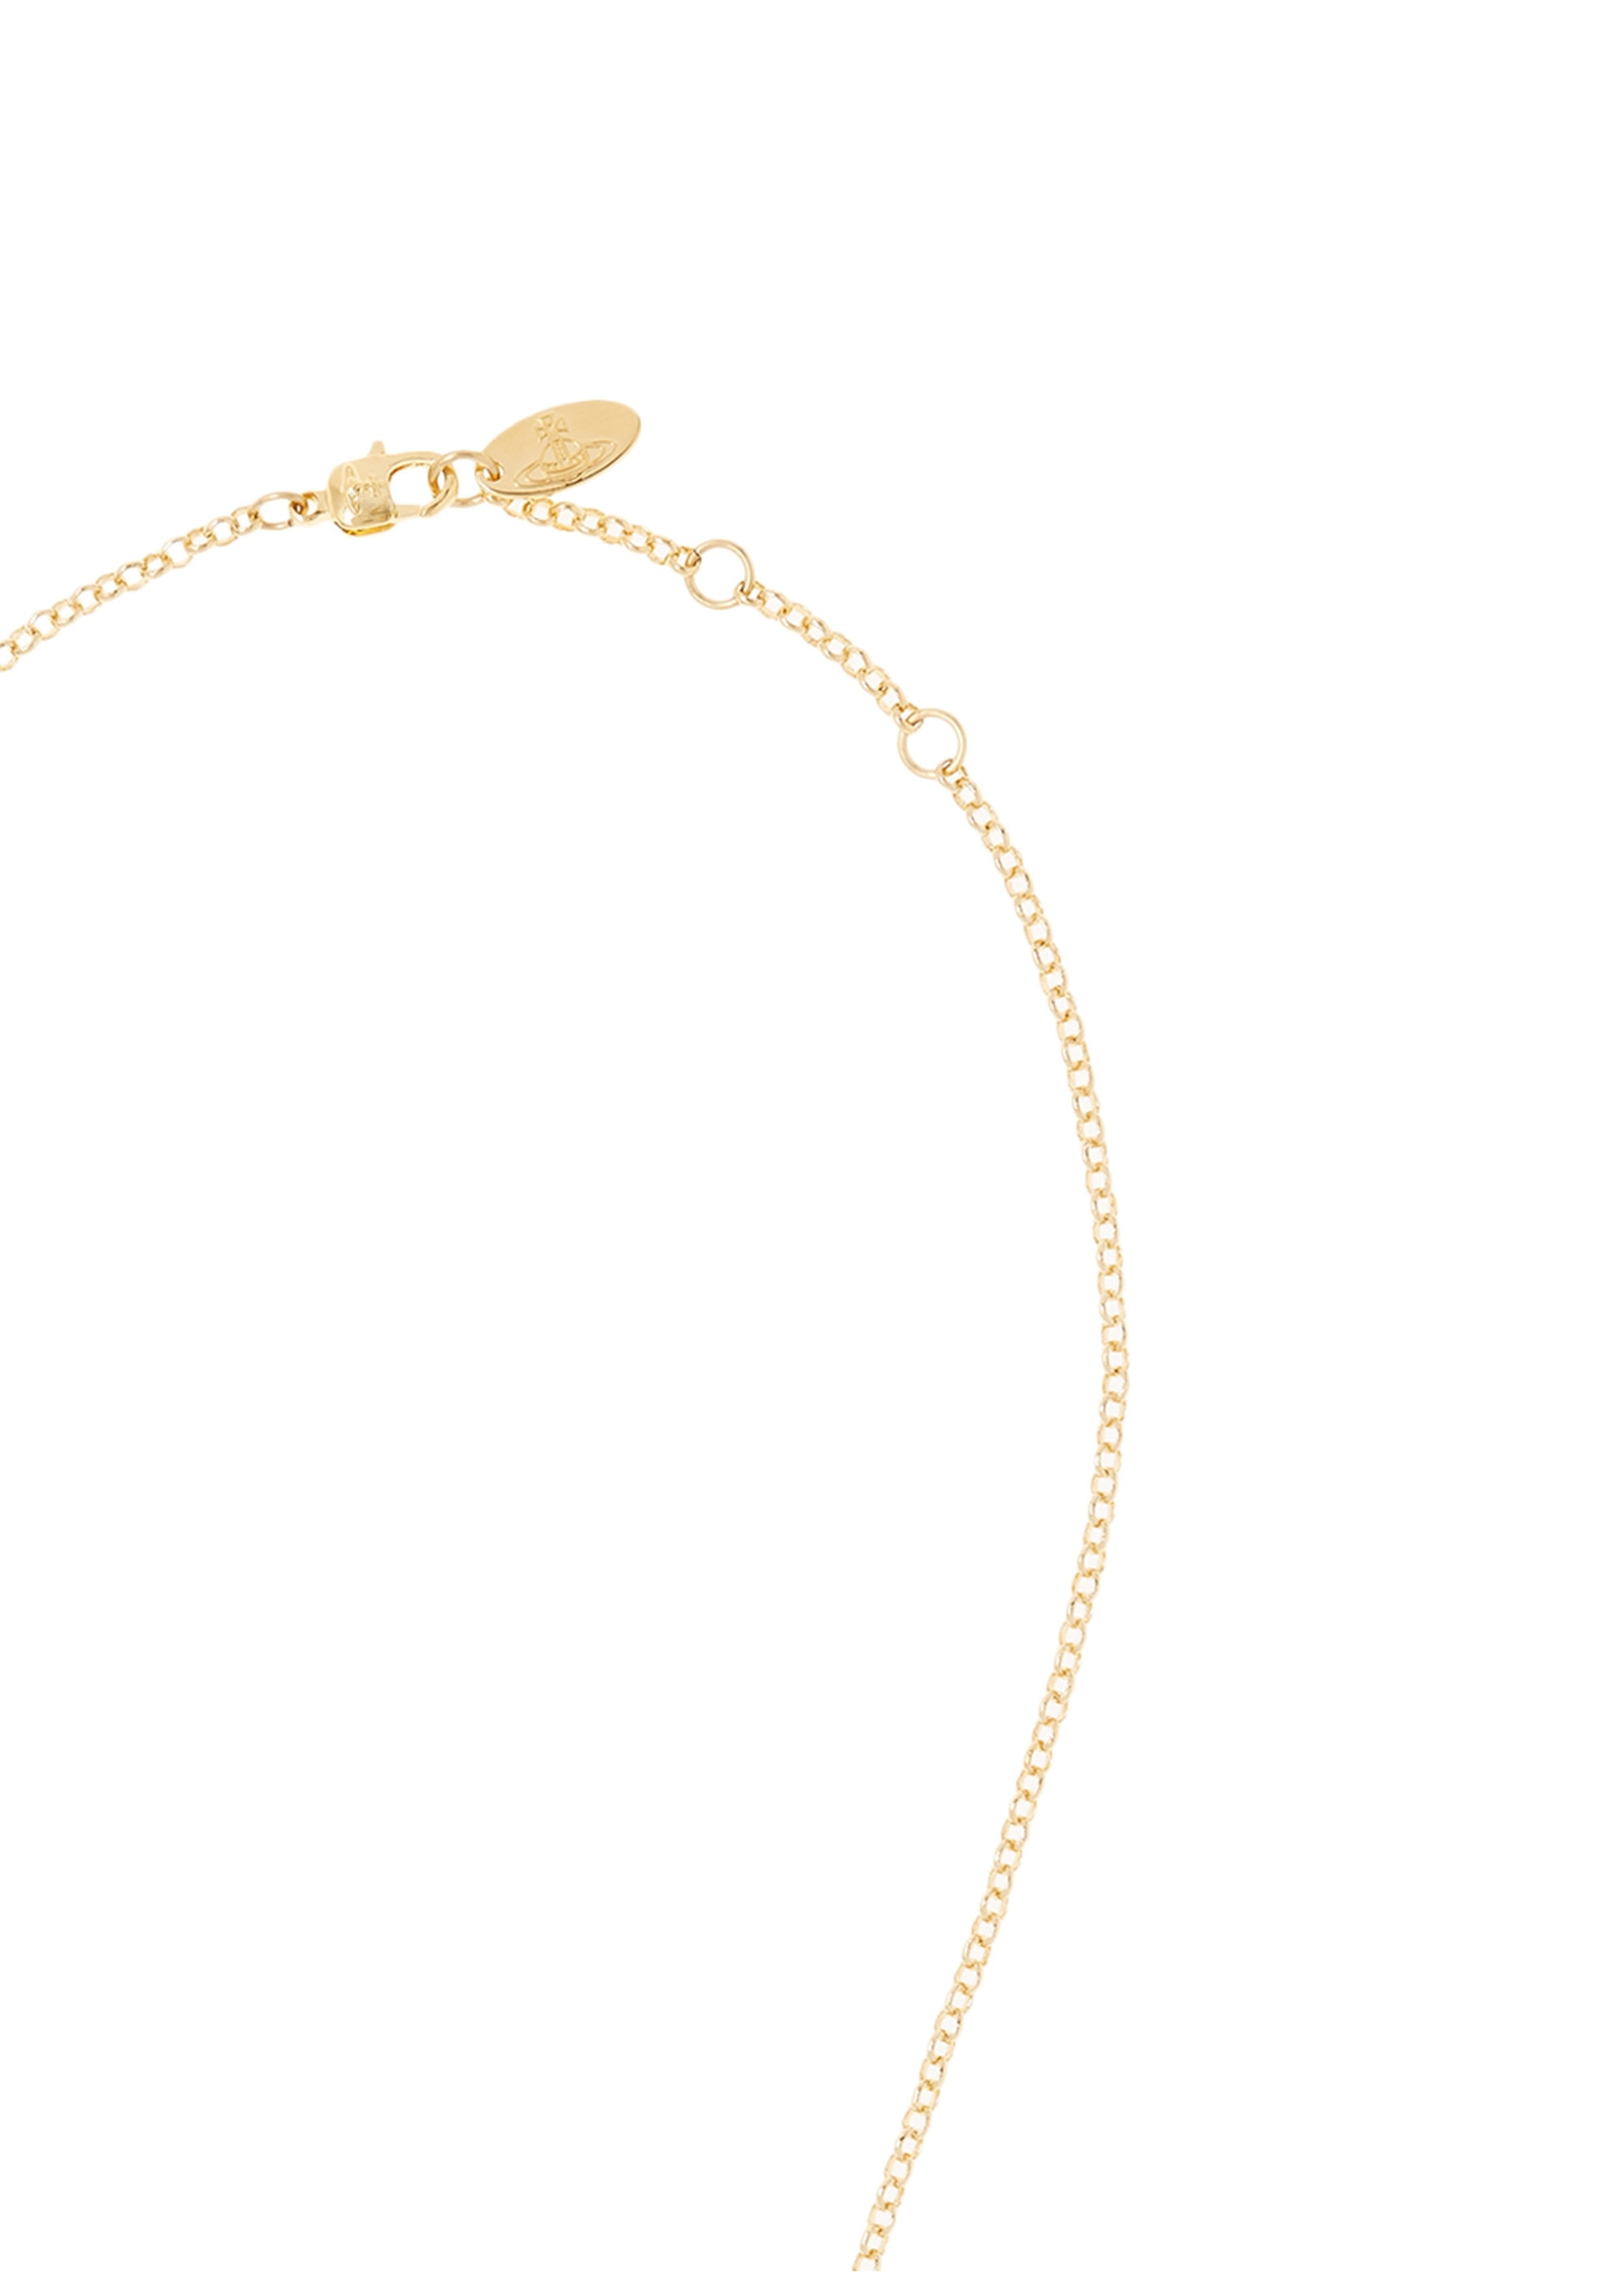 ade3ae3eb033 Vivienne Westwood Accessories Mini Bas Relief Pendant - Gold ...